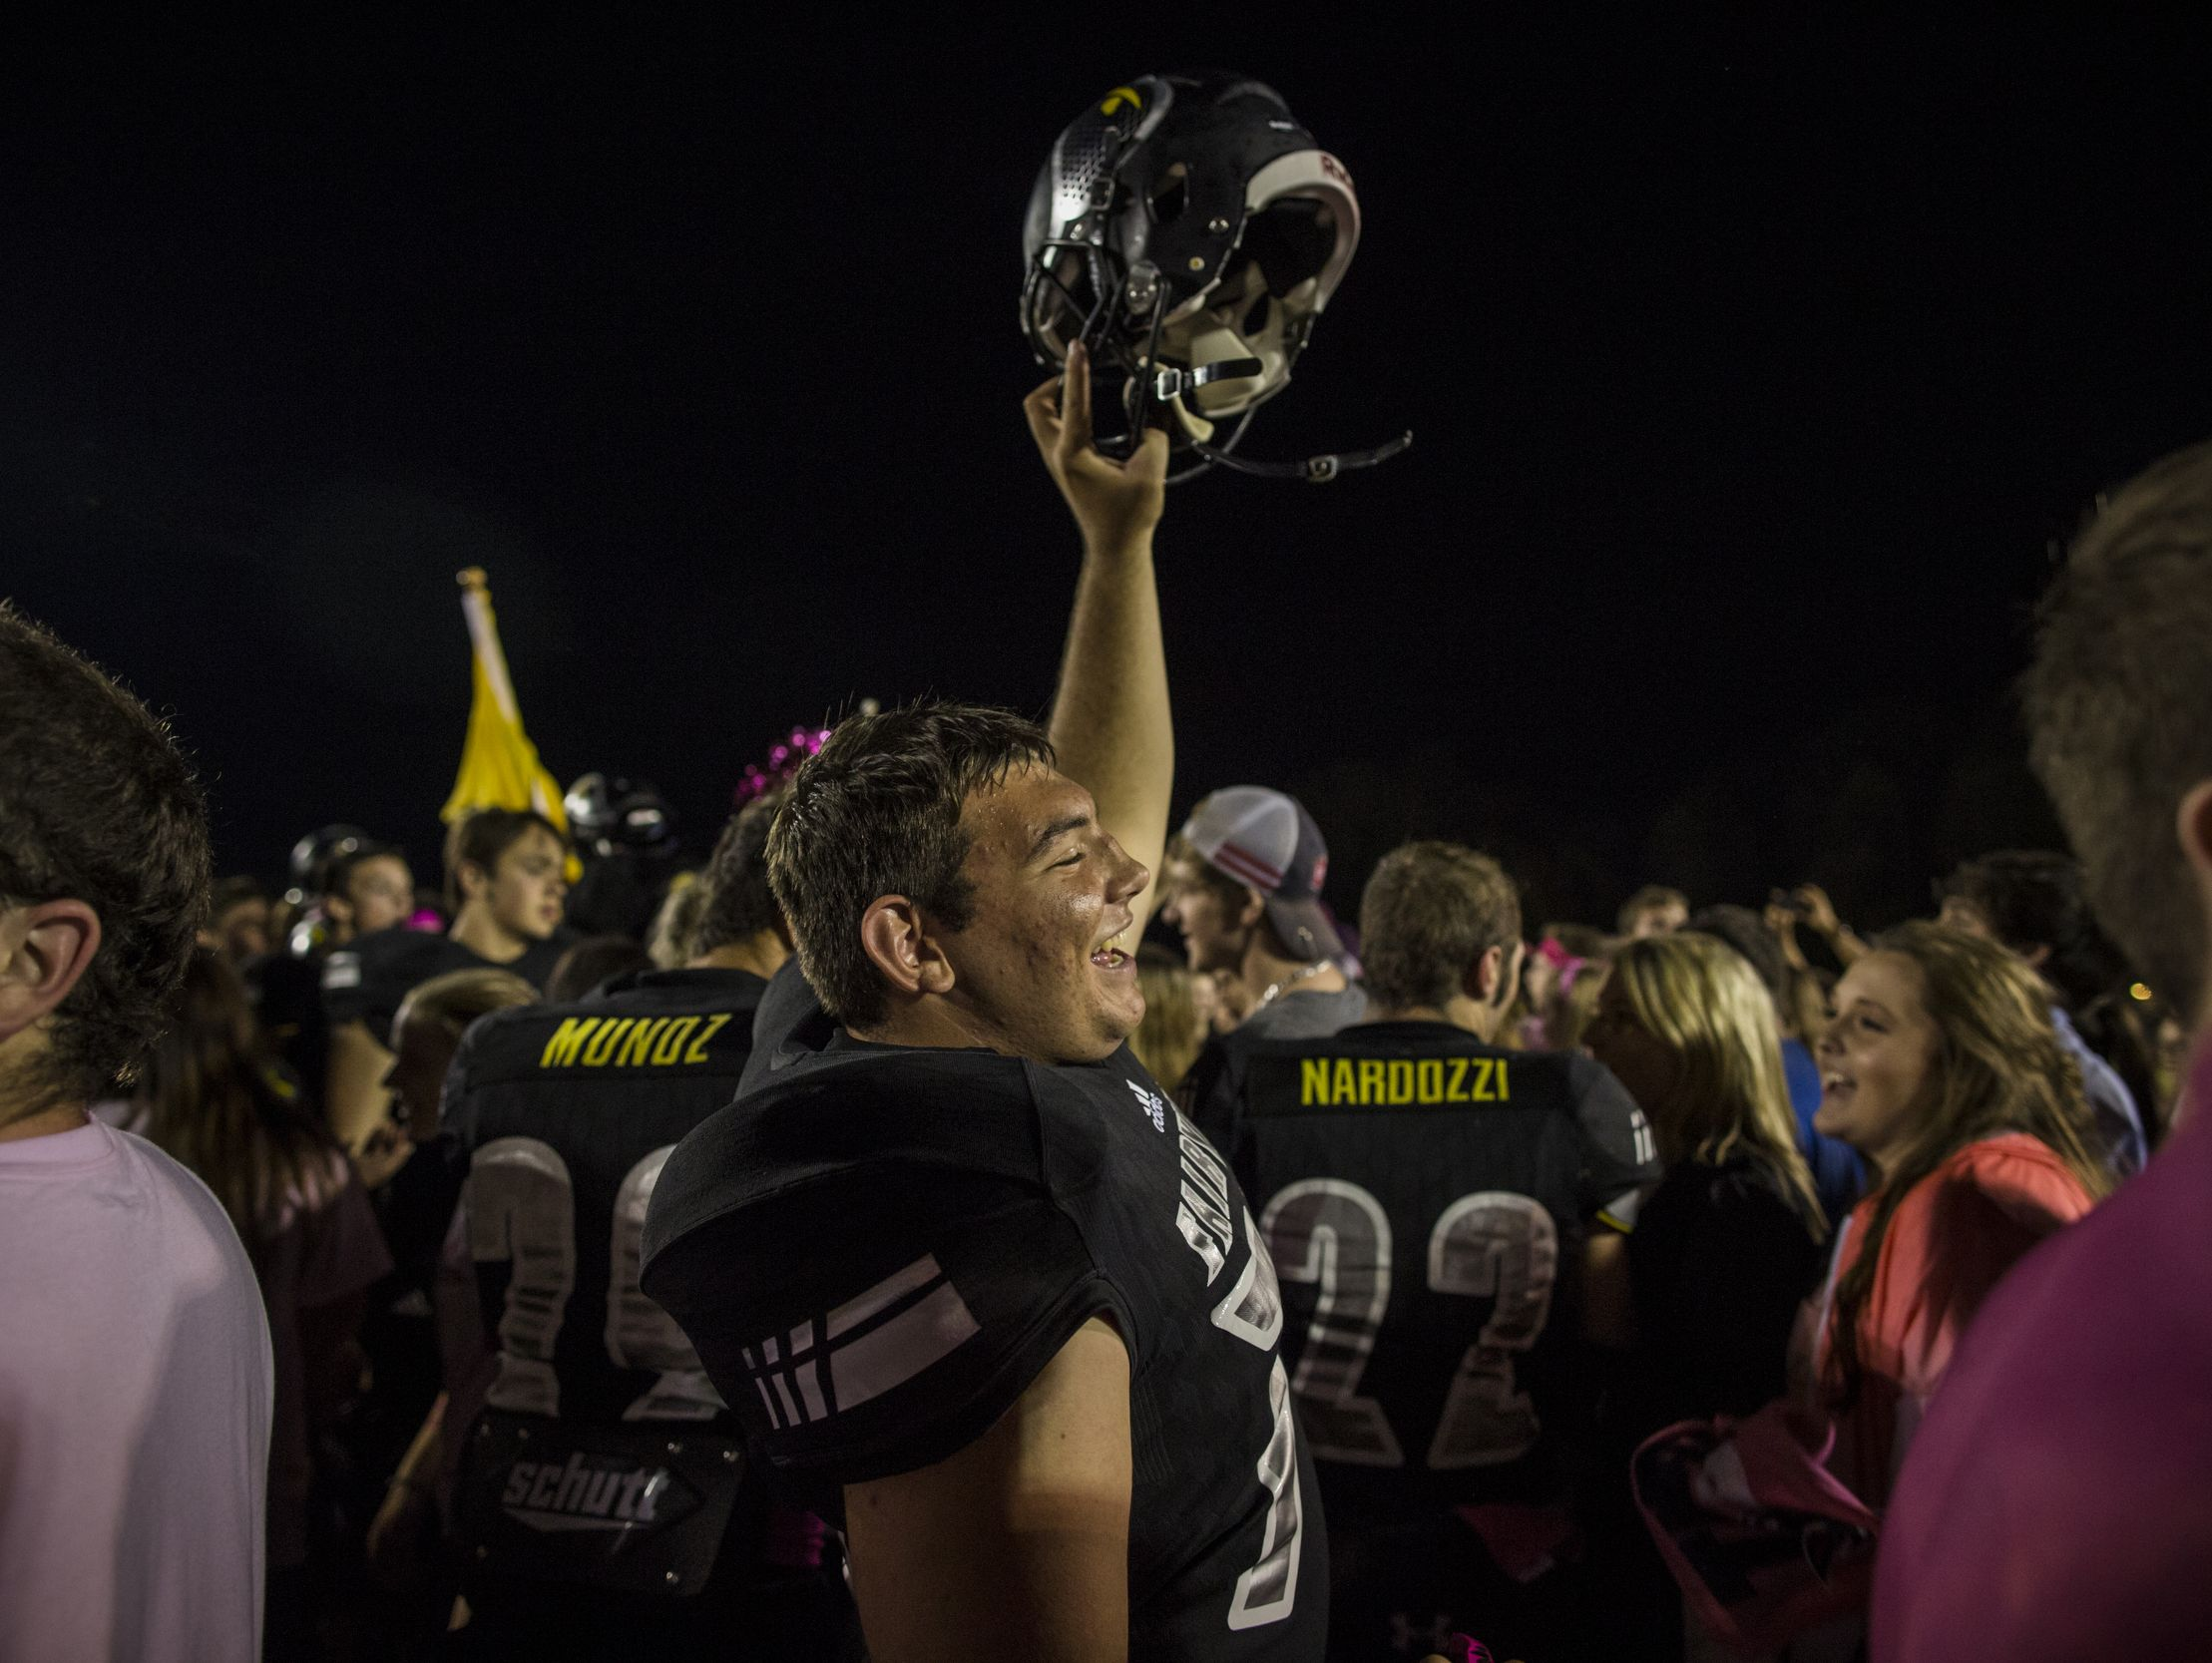 Fairview High School players celebrate after beating Harpeth High School 46-11 on their way to a 10-0 on the season.